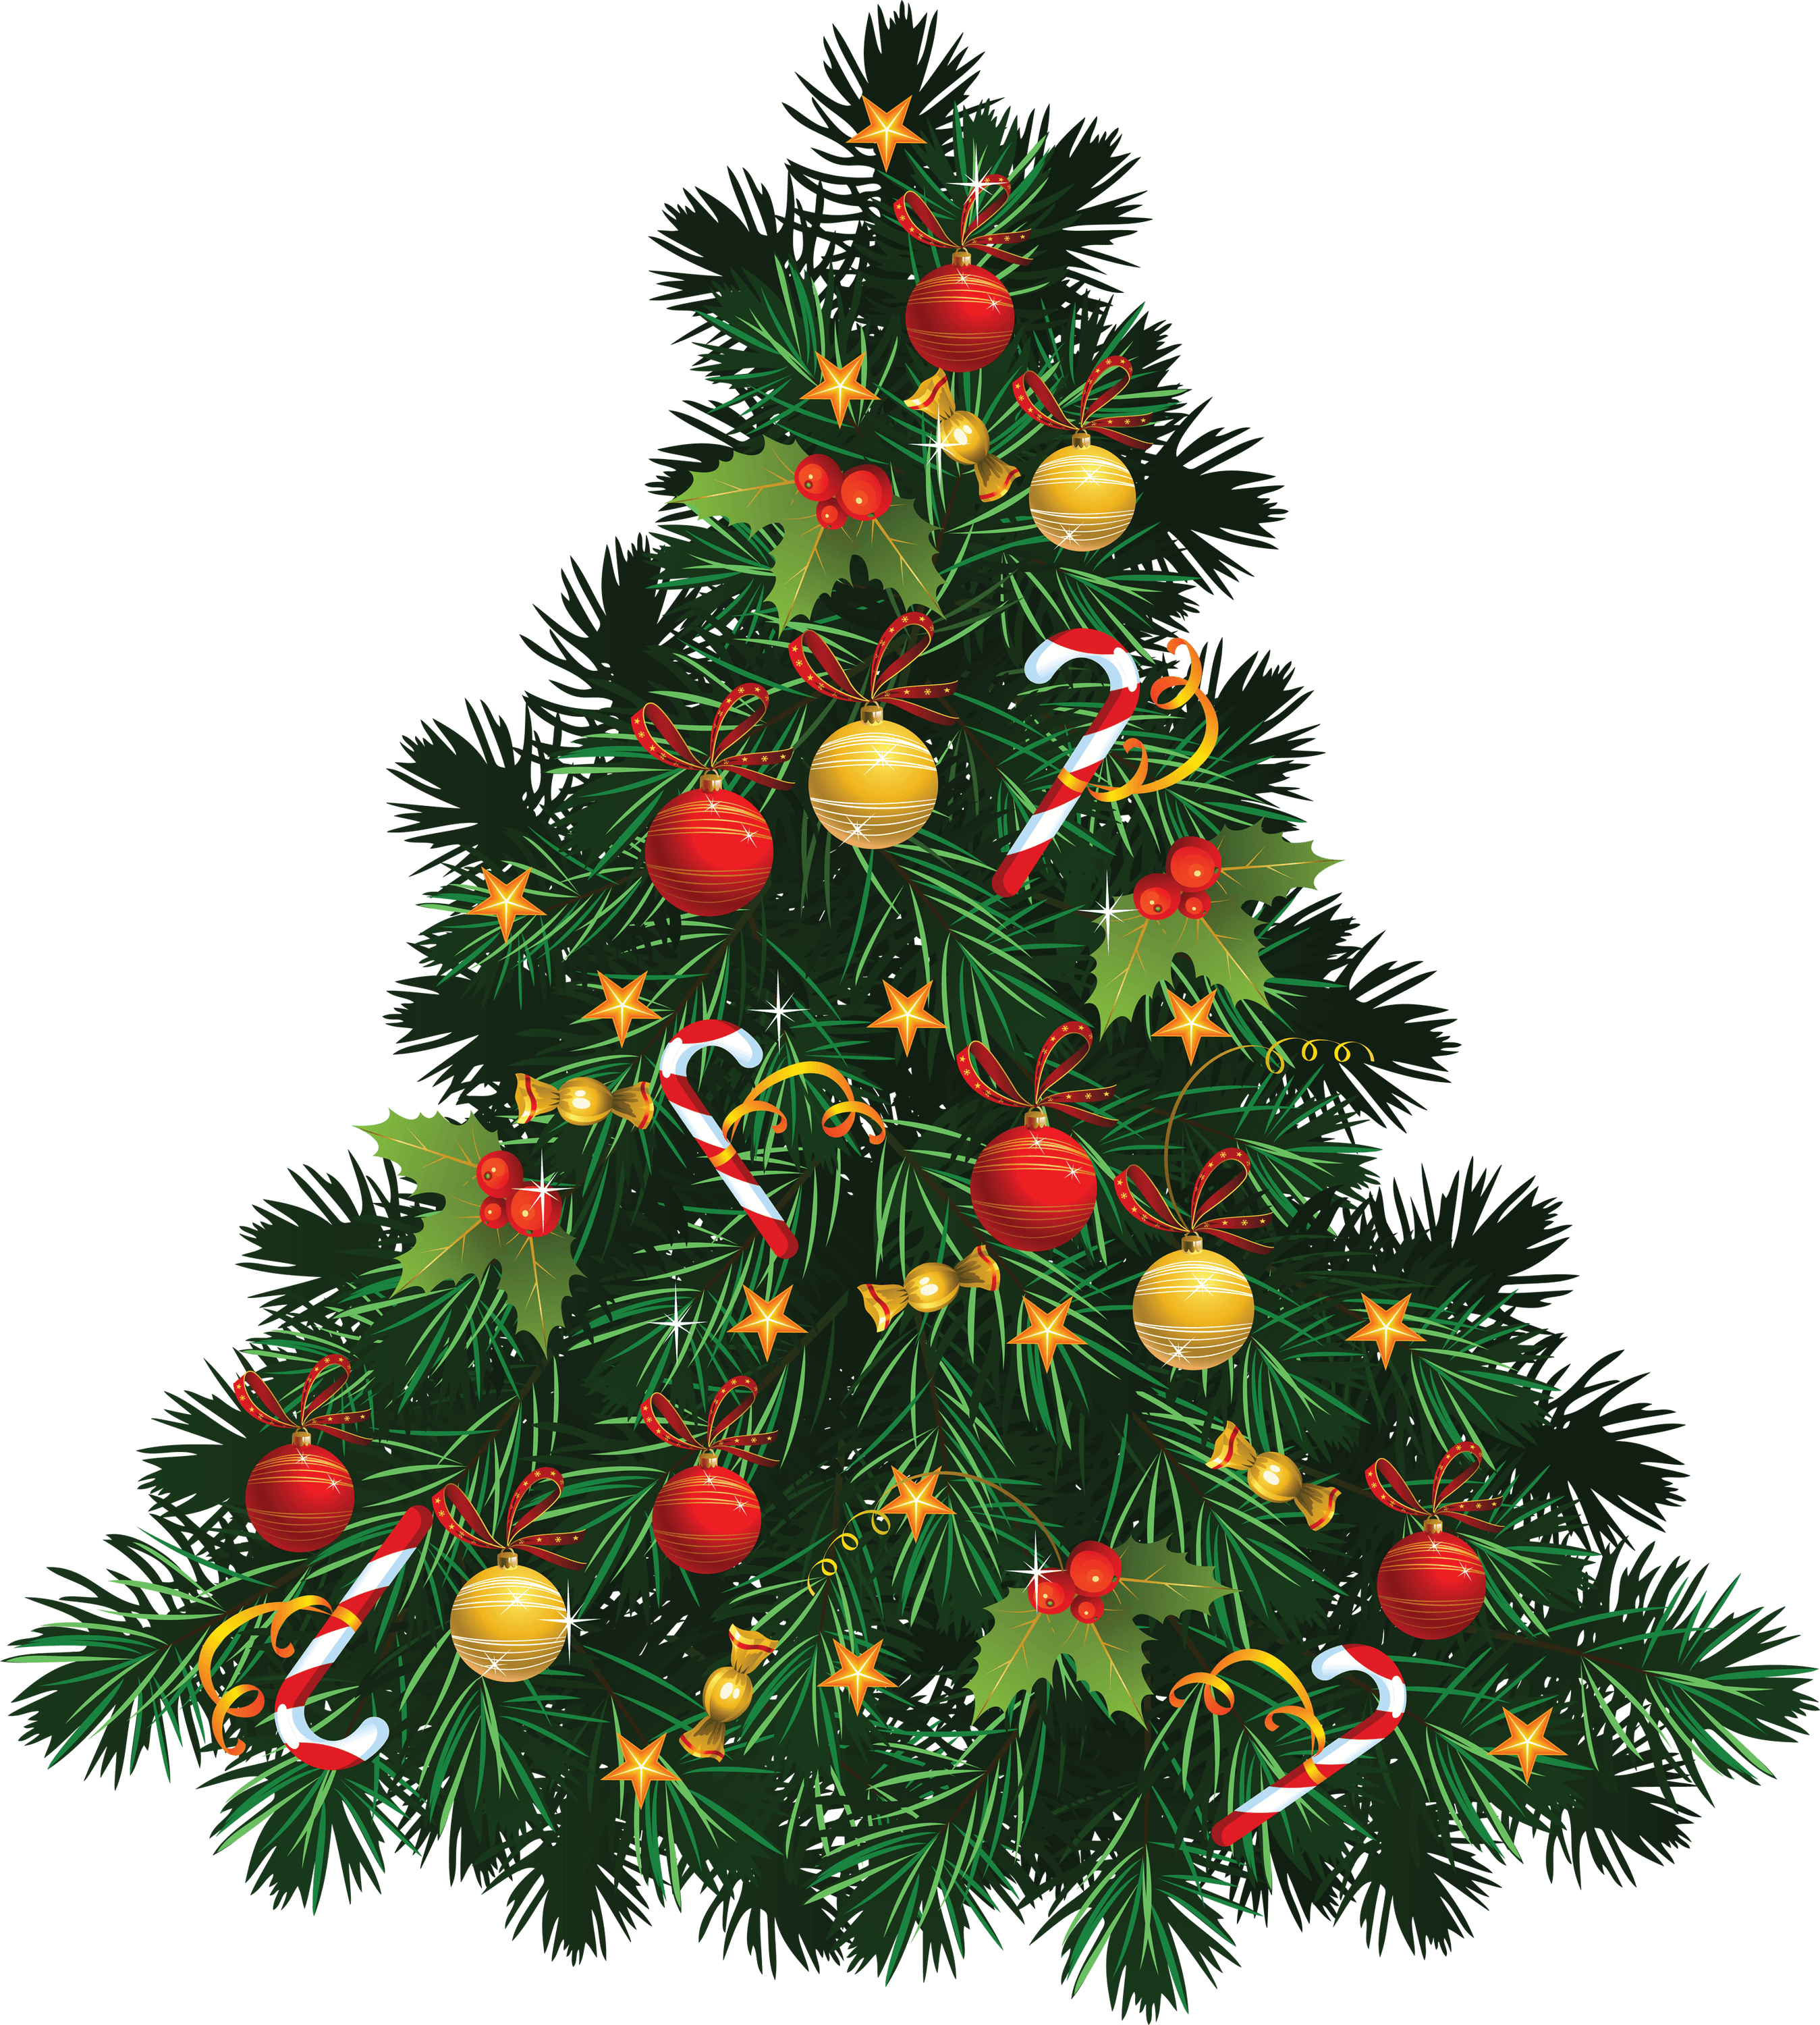 Fir Tree Christmas Transparent Png Stickpng